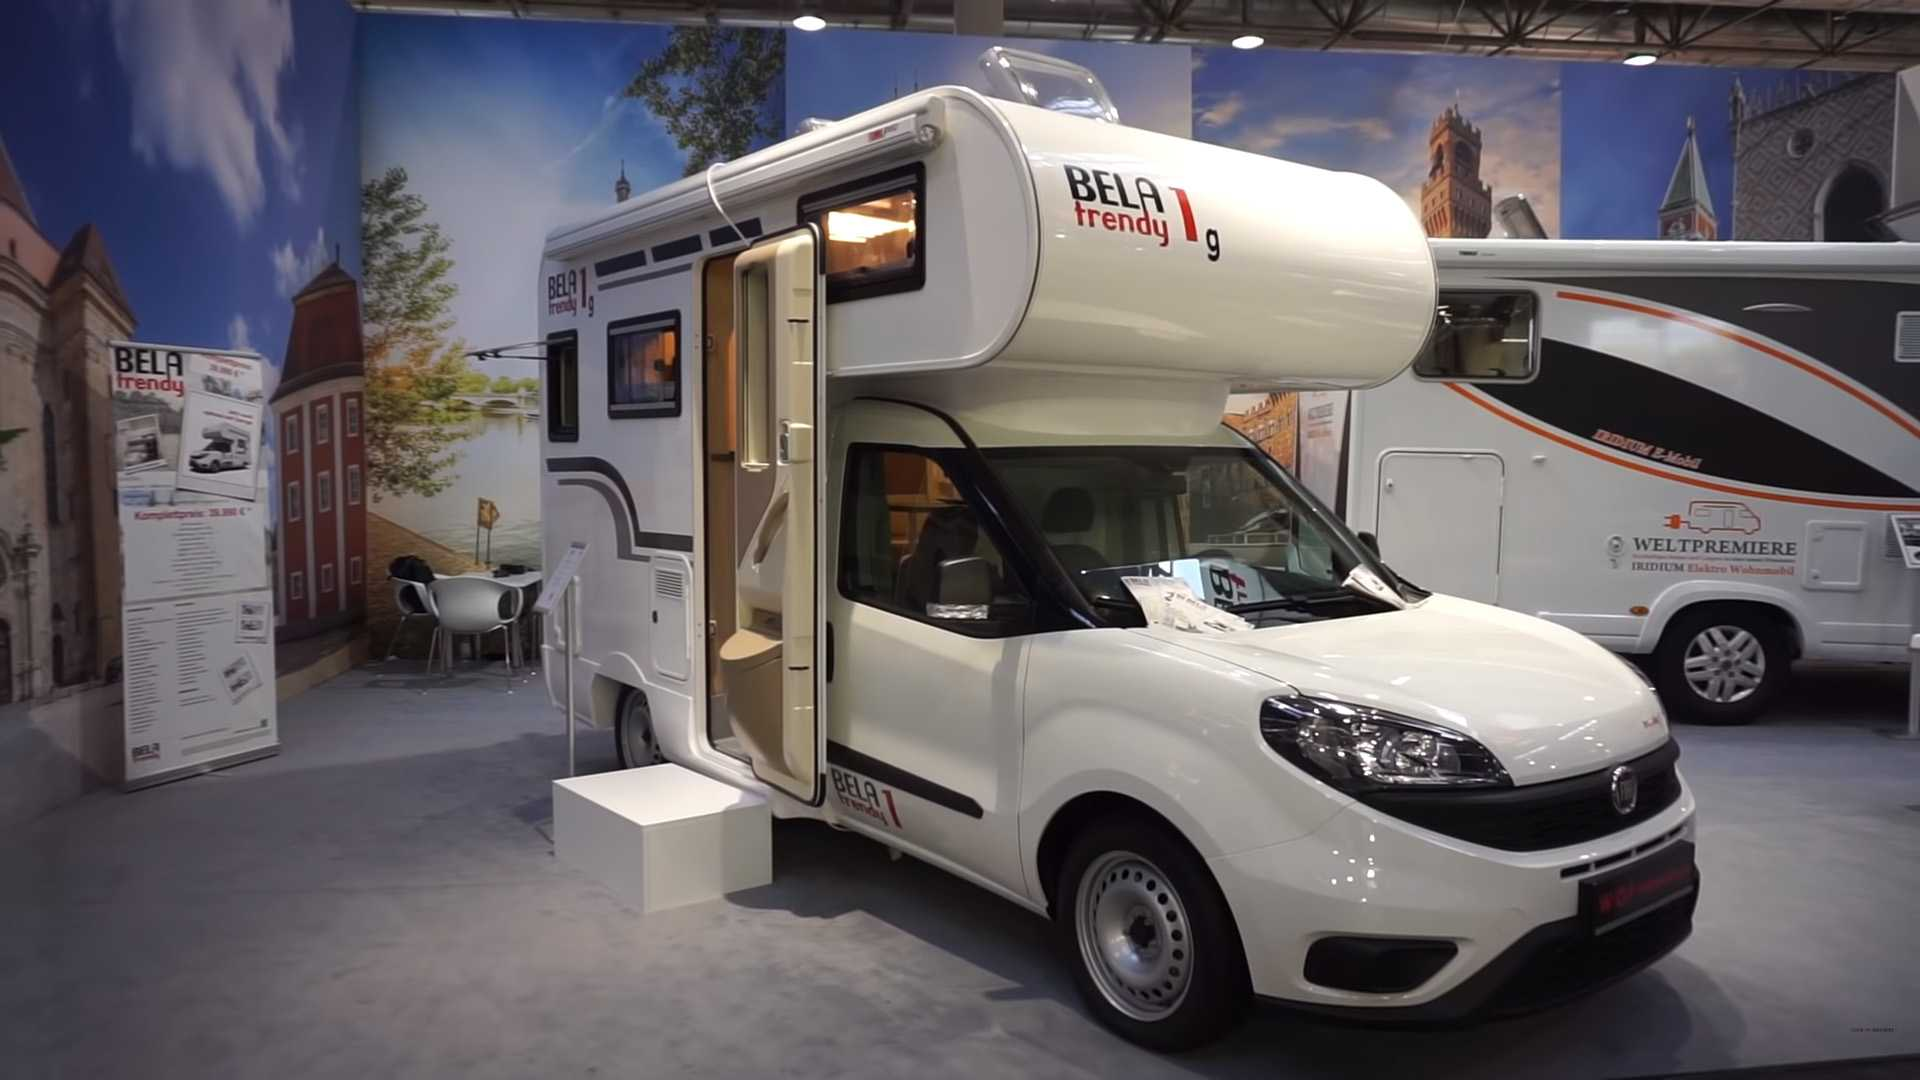 Bela Trendy RV Will Make You Smitten With Its Small Size